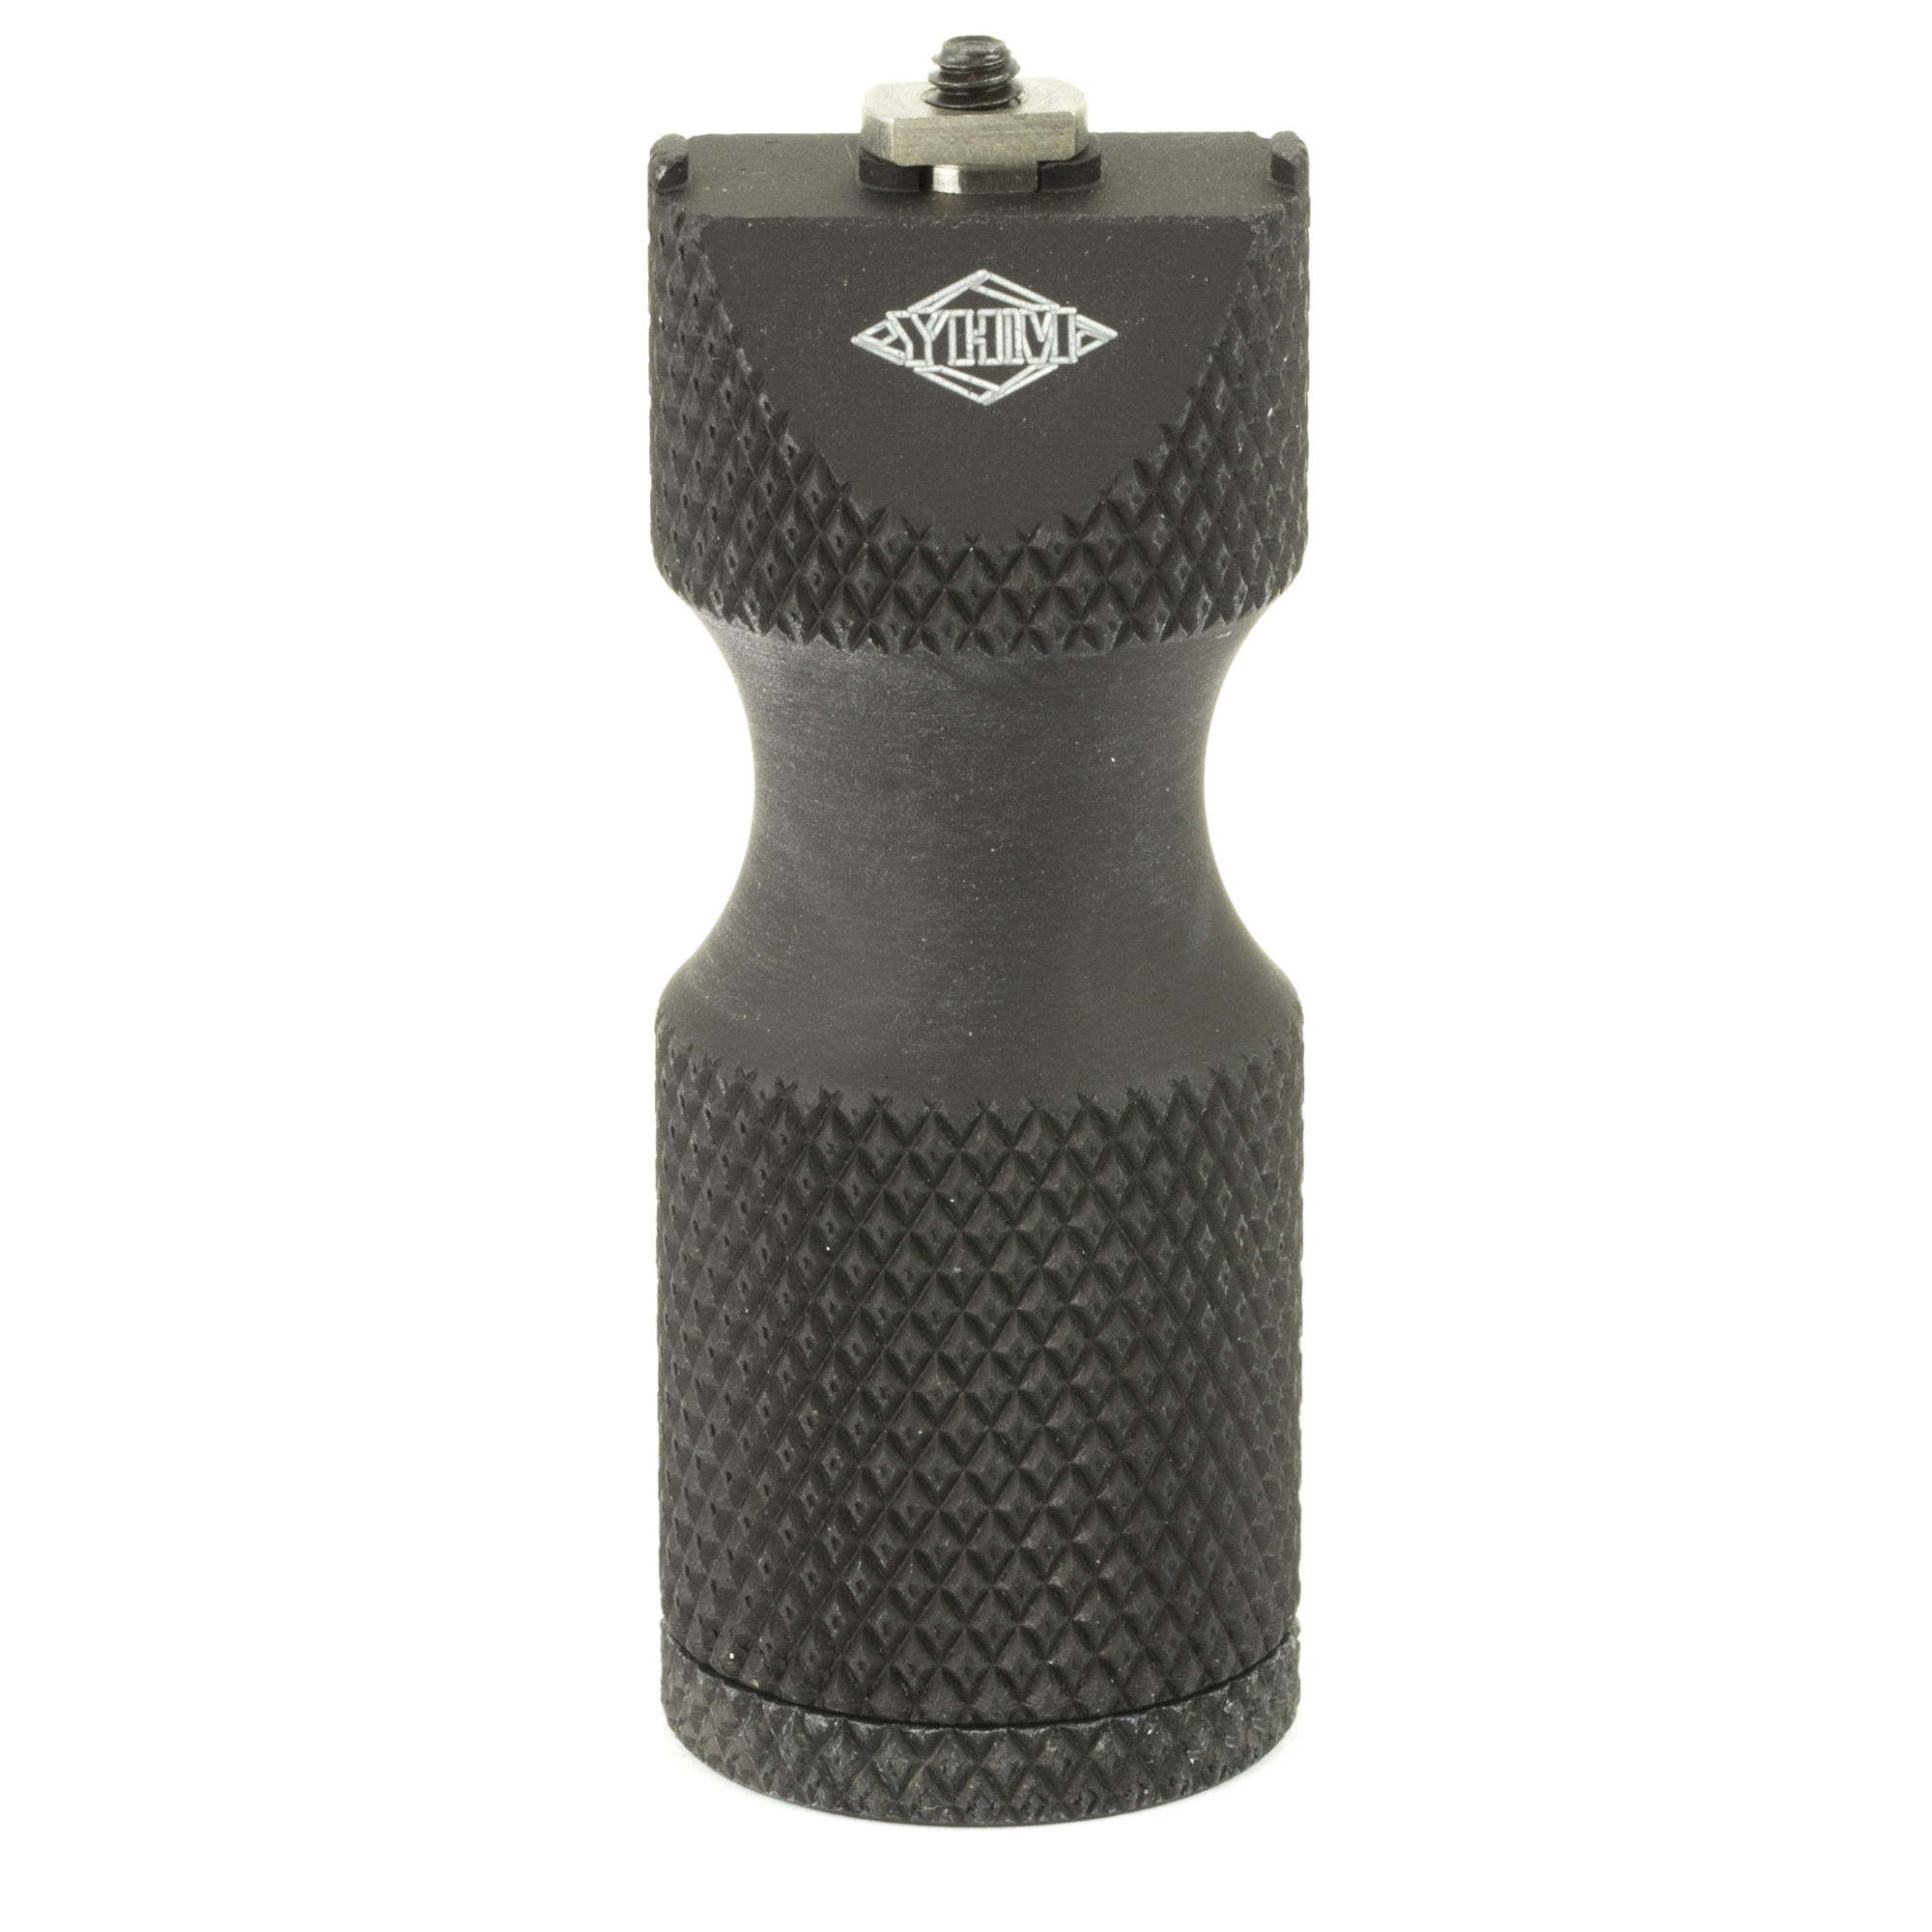 """This ambidextrous vertical grip is a simple"""" lightweight"""" and cost-effective device which secures tightly to any M-Lok mounting system. The low profile vertical grip design provides a positive hand hold in a small package. Adequately sized to allow the hand to take control of the front of the rifle"""" but not large enough to get in the way. The battery compartment will fit two CR123 batteries."""